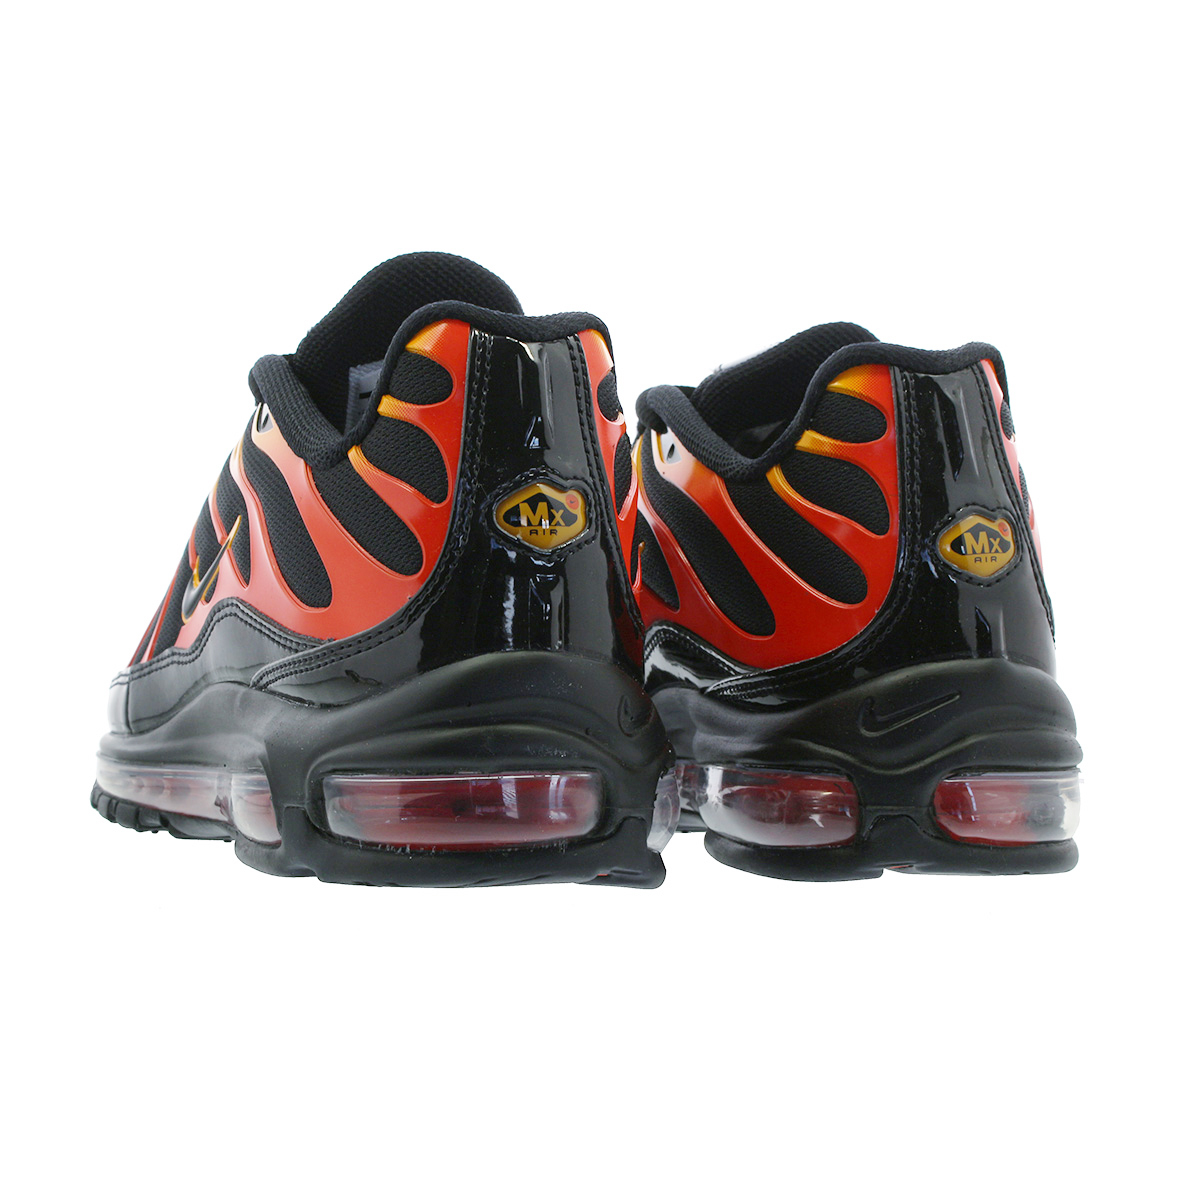 bb715c17c8 ... NIKE AIR MAX 97 PLUS Kie Ney AMAX 97 plus BLACK/ENGINE 1 /SHOCK ...